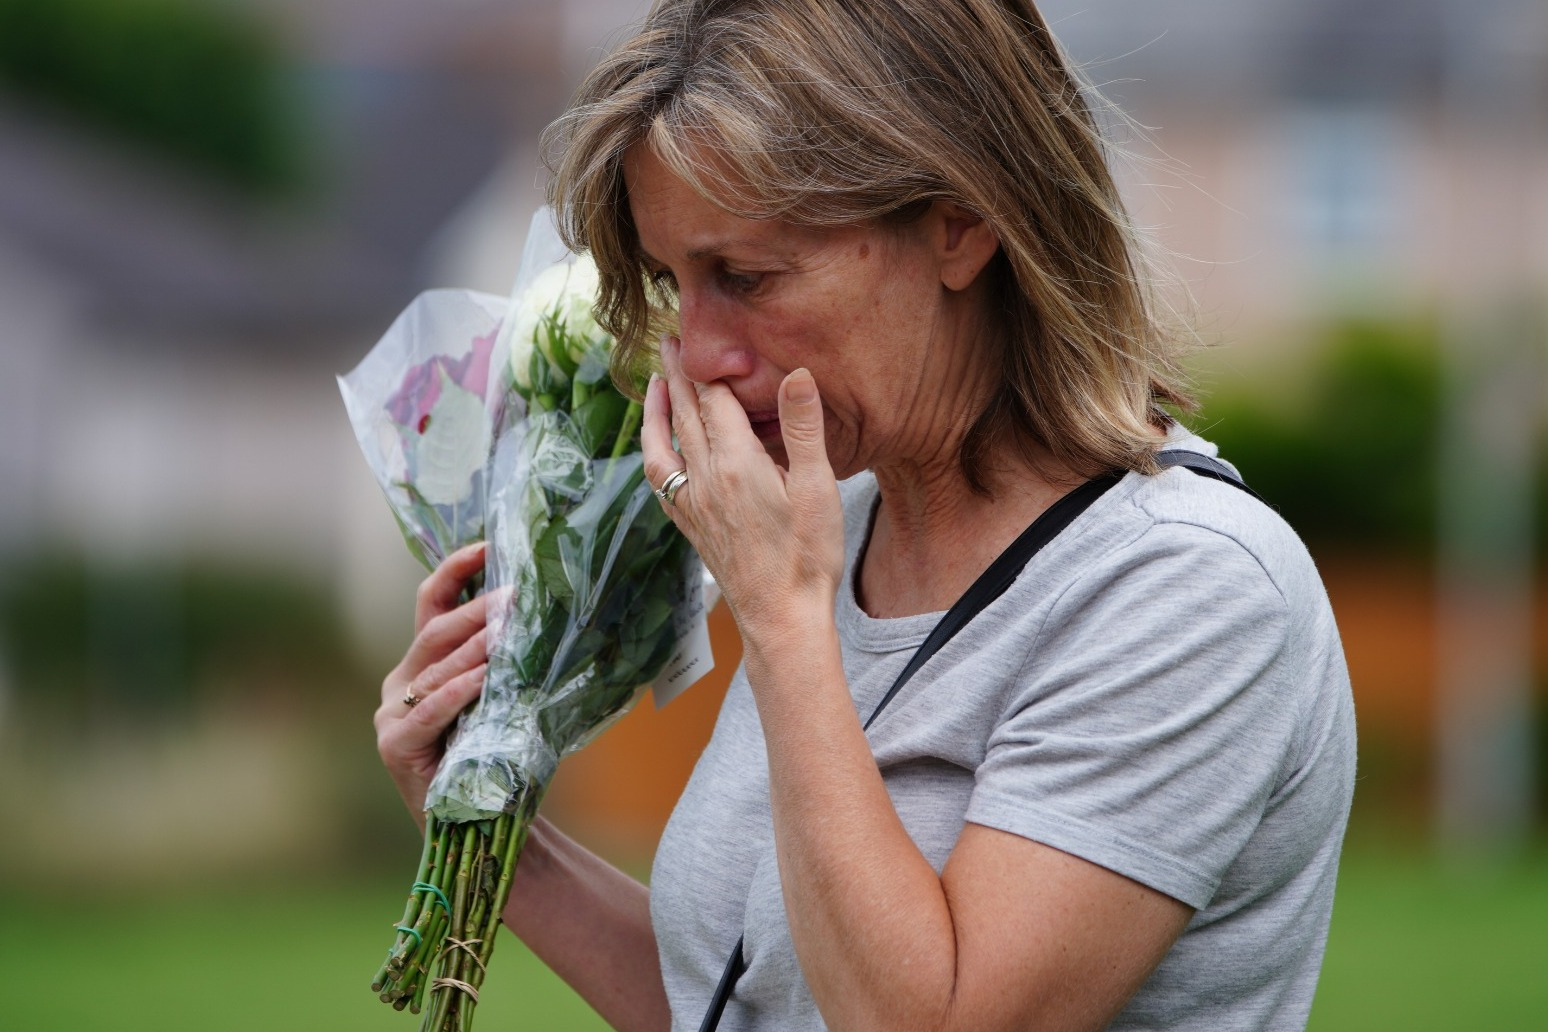 Special prayers planned as Plymouth continues to mourn shooting victims